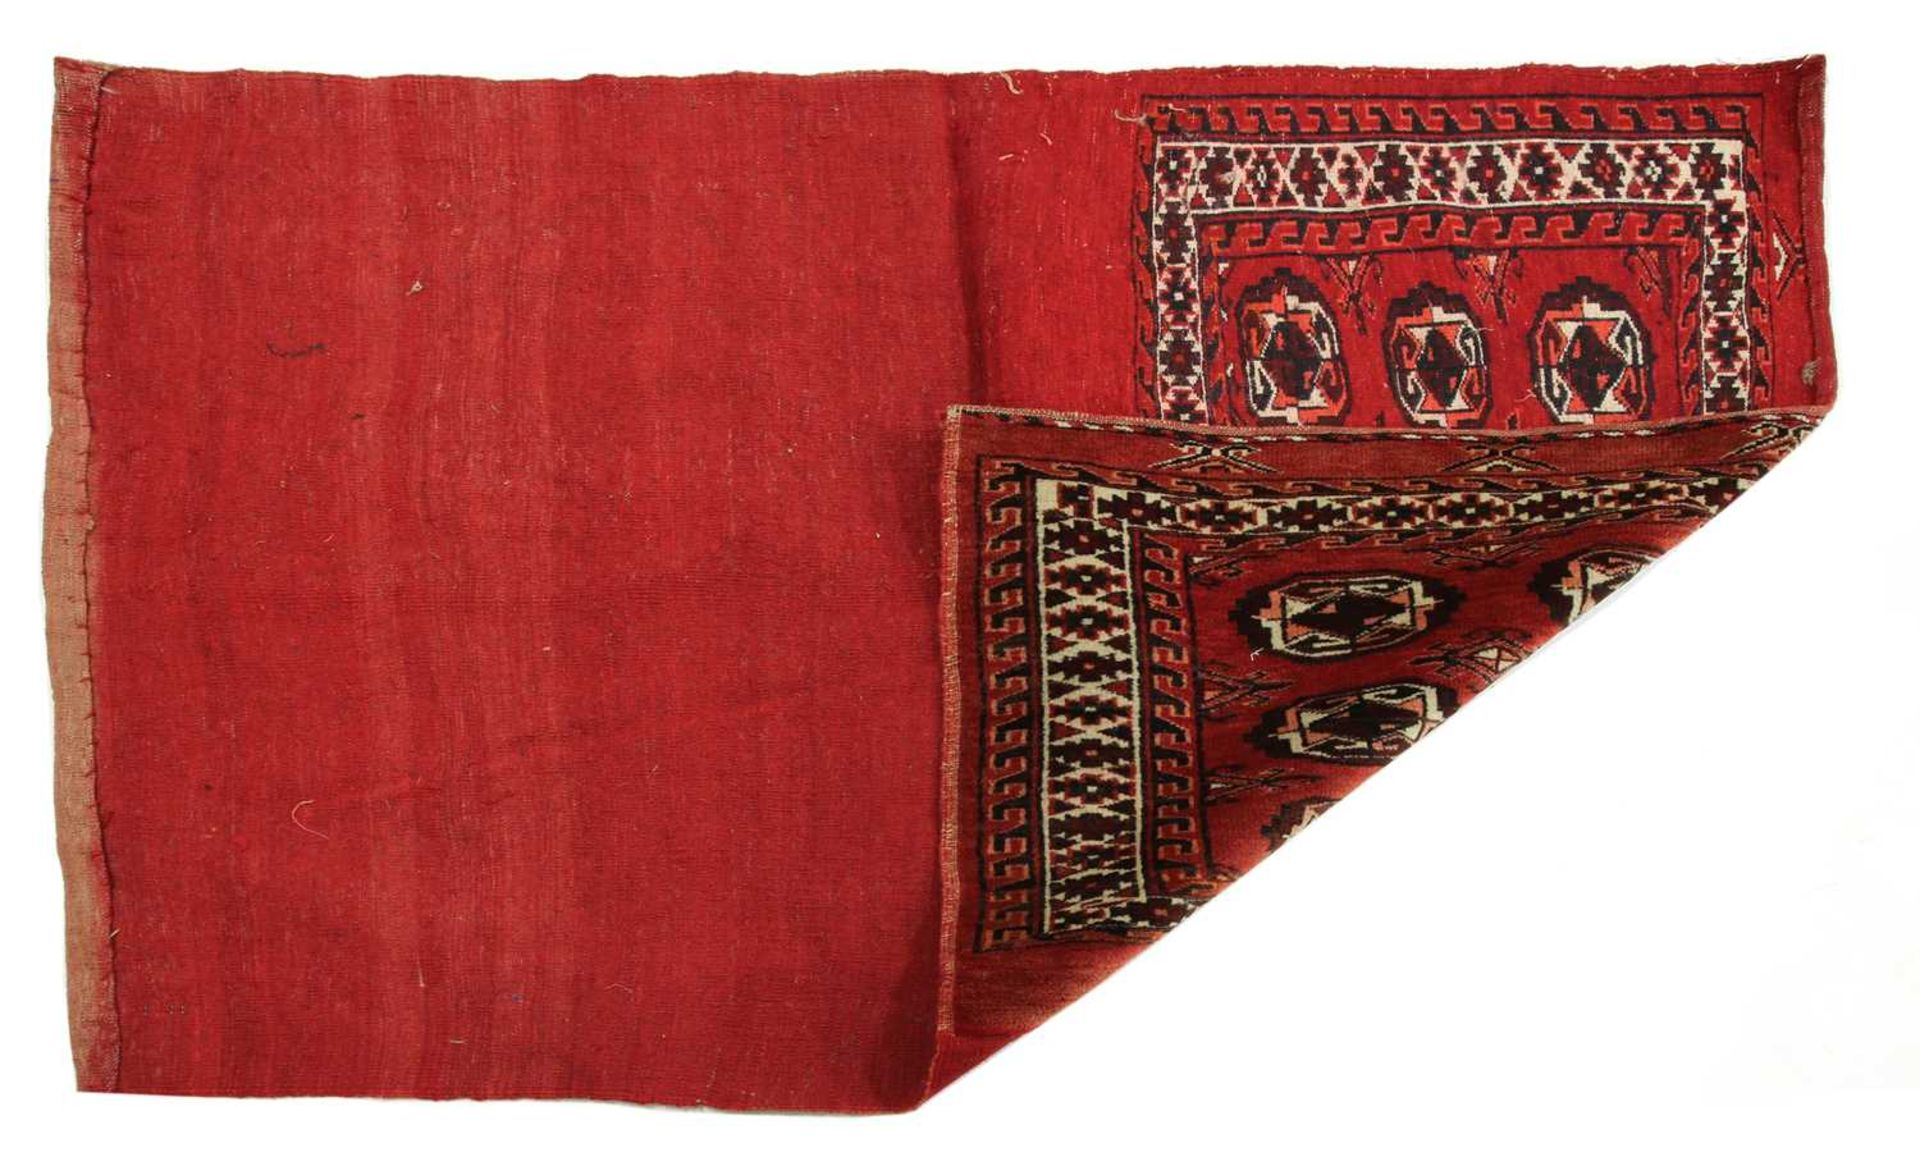 Two Persian bags, - Image 4 of 4